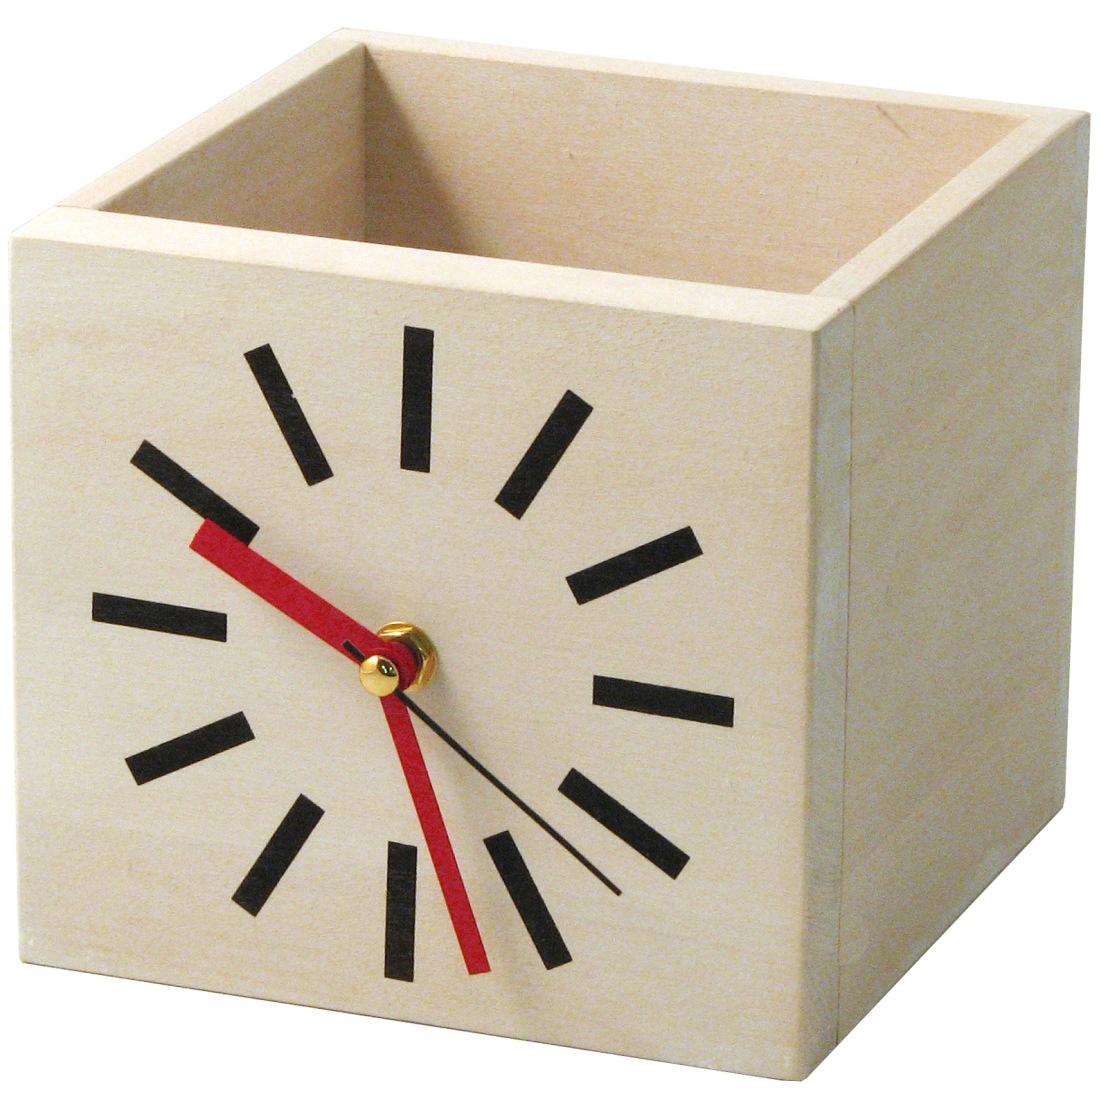 Agile with deadlines using time-boxing